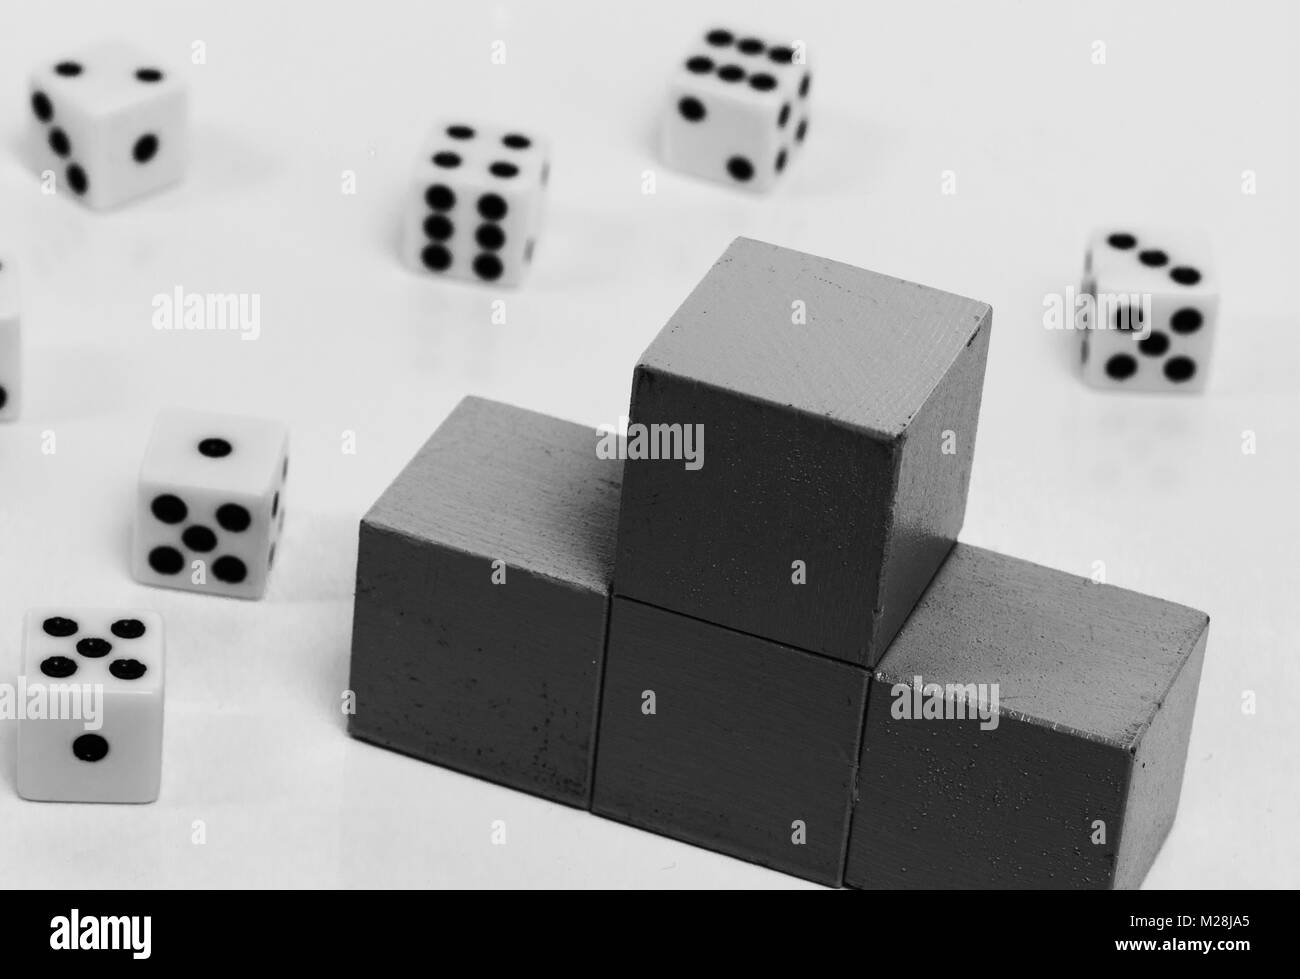 podium surrounded by dice as a symbol of luck - Stock Image